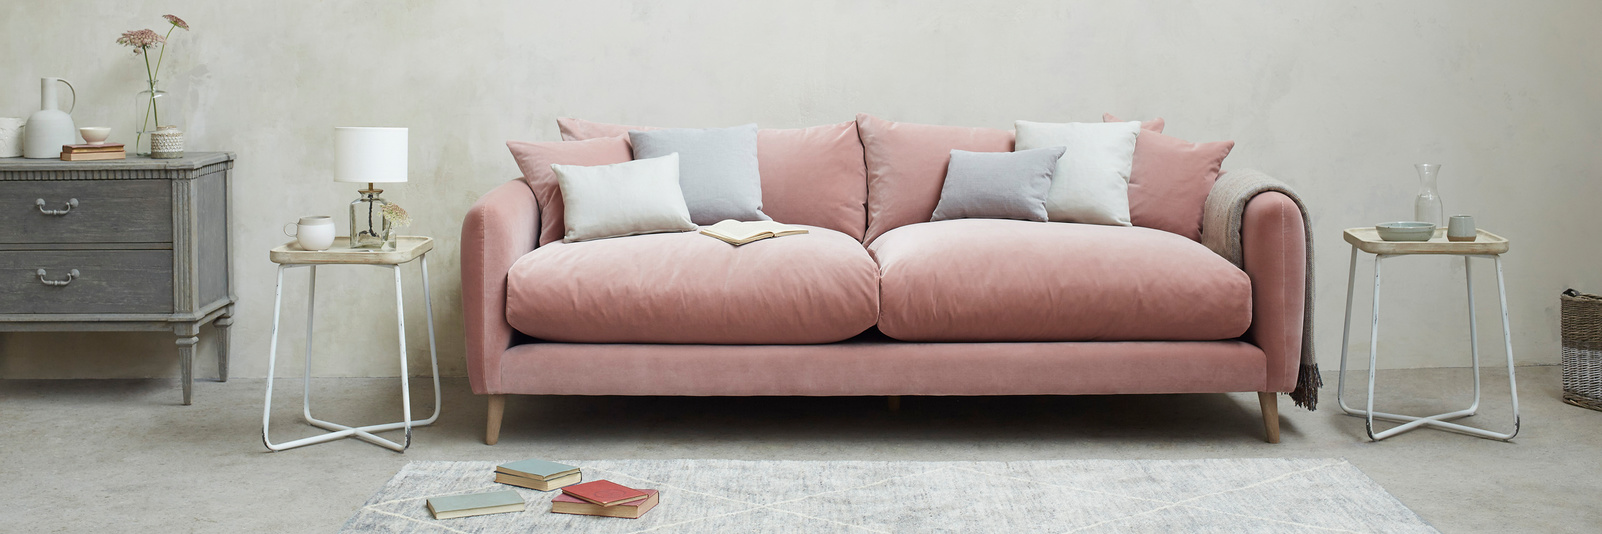 Squishmeister Feather Filled Back Cushions Sofa with solid oak legs